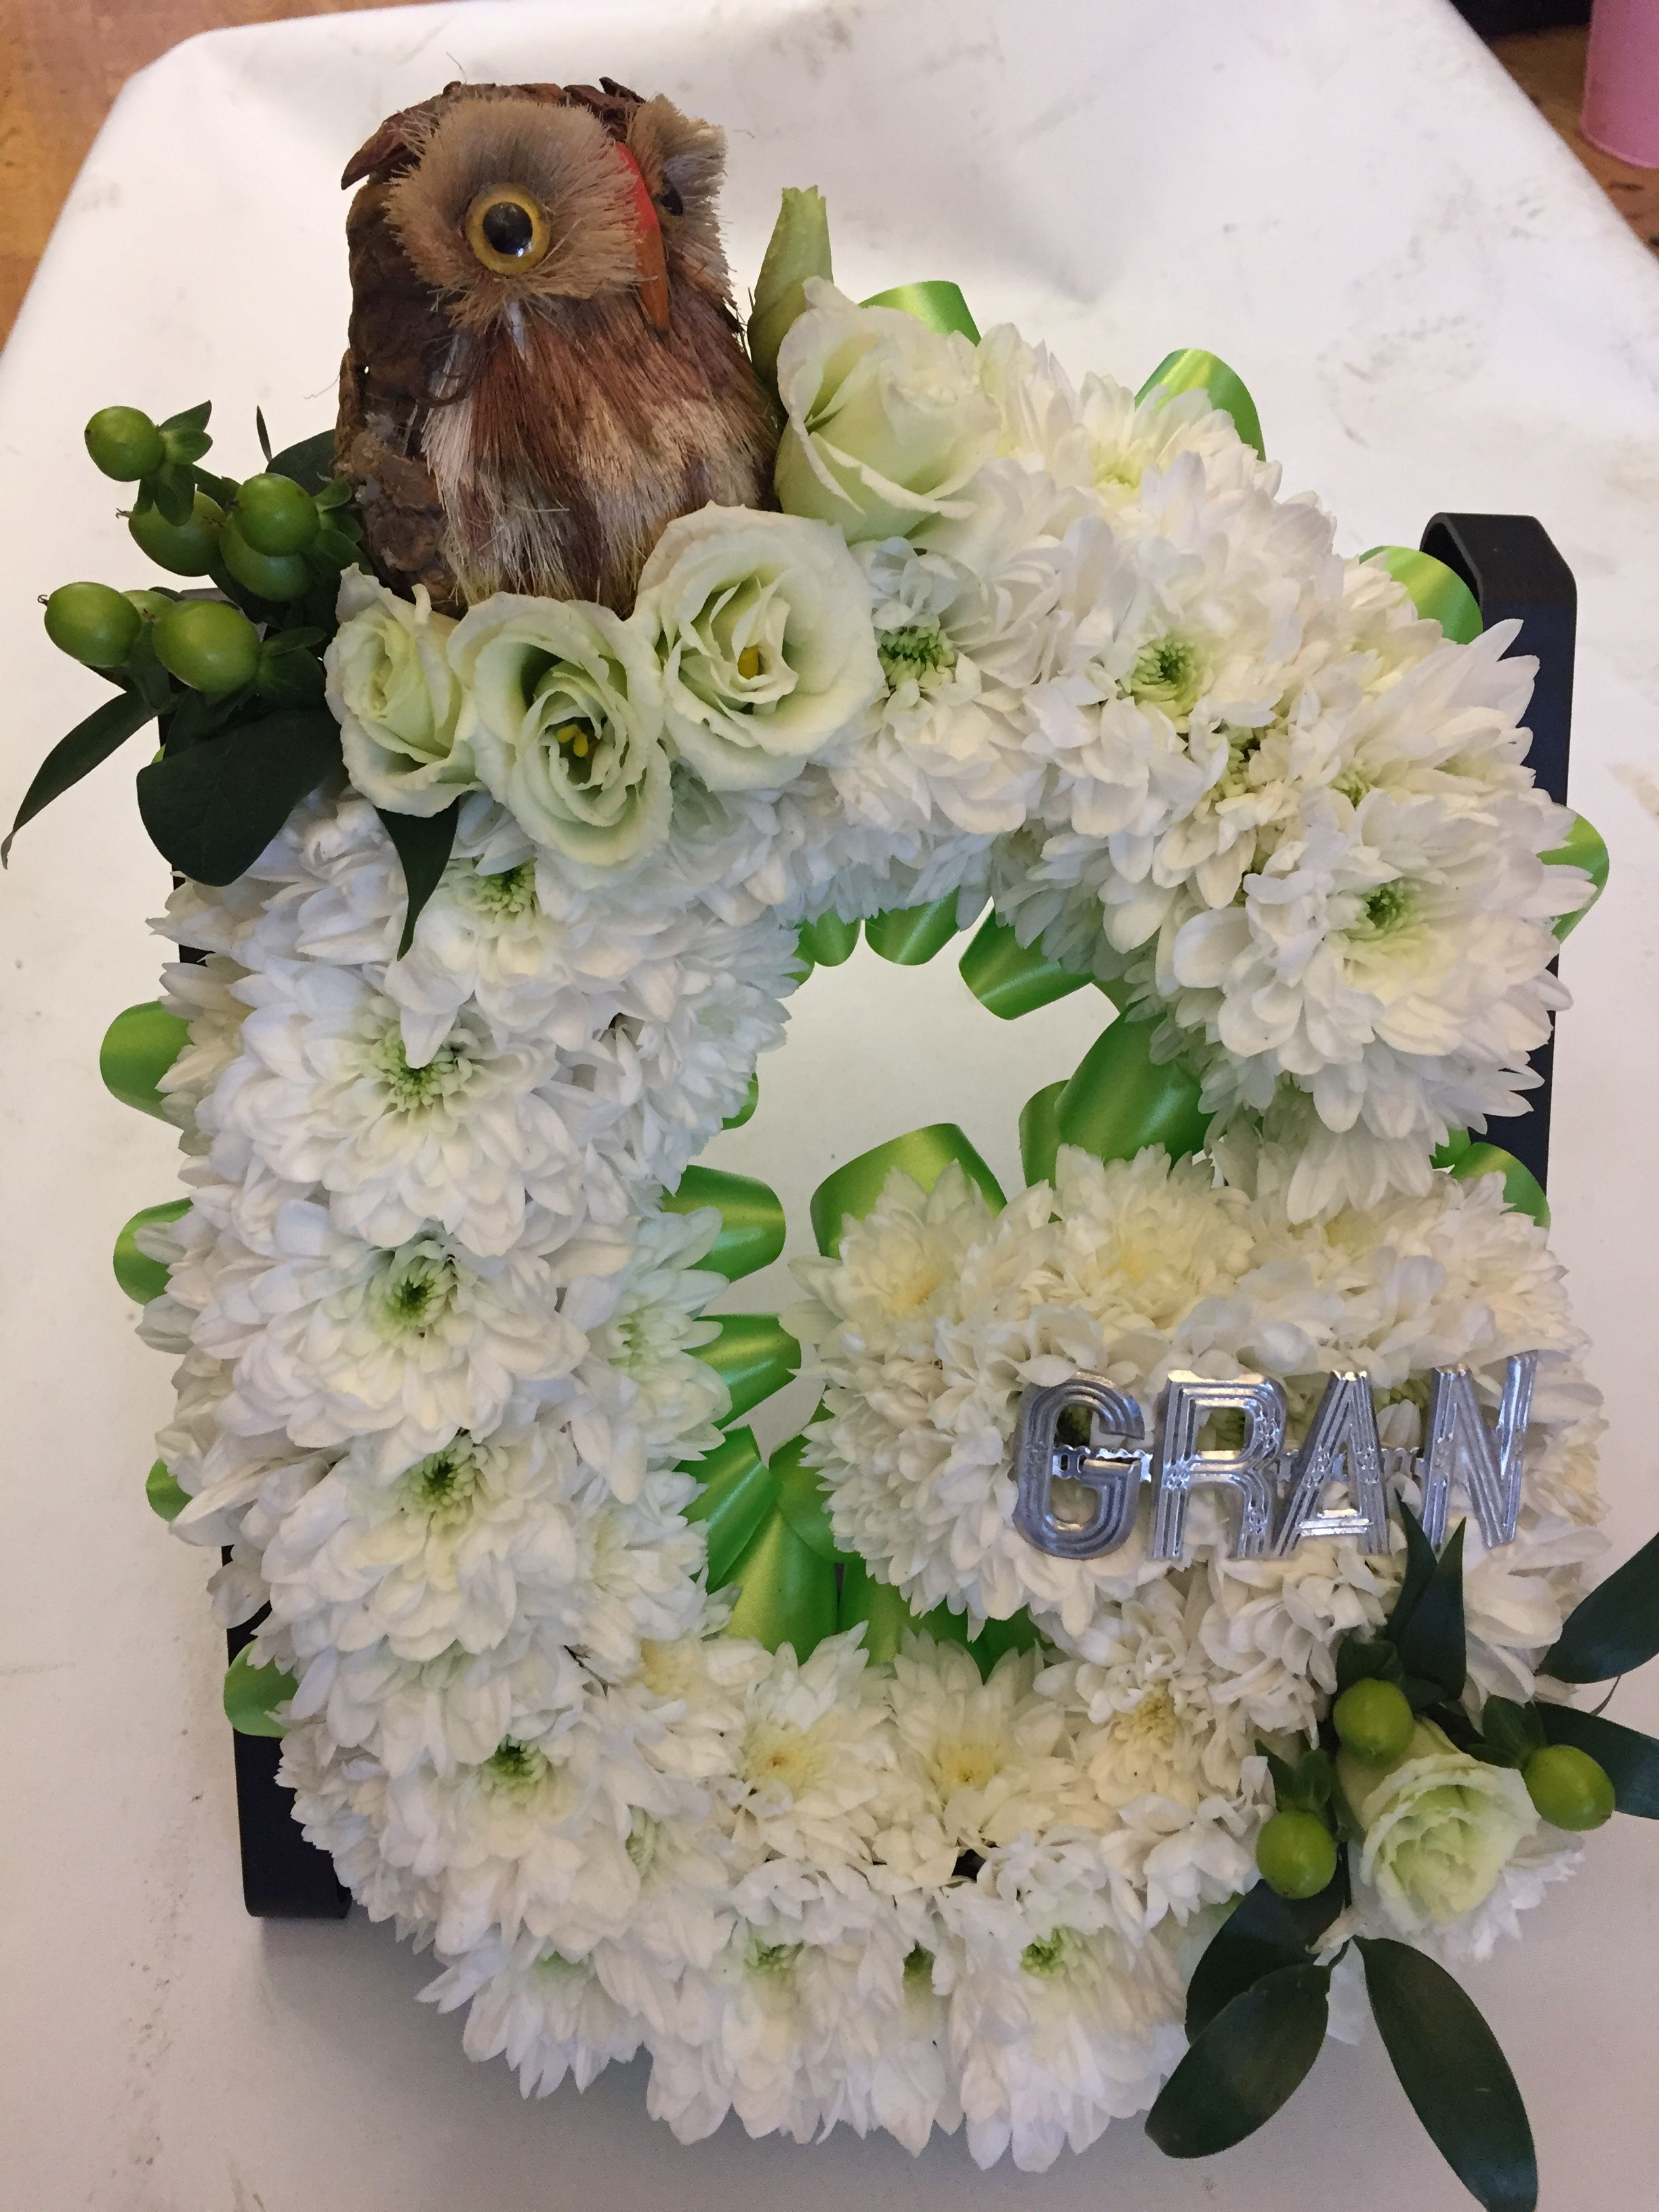 Letter G For Gran As Funeral Flowers With An Owl And Silver Letters Funeral Flowers Wedding Flowers Flowers